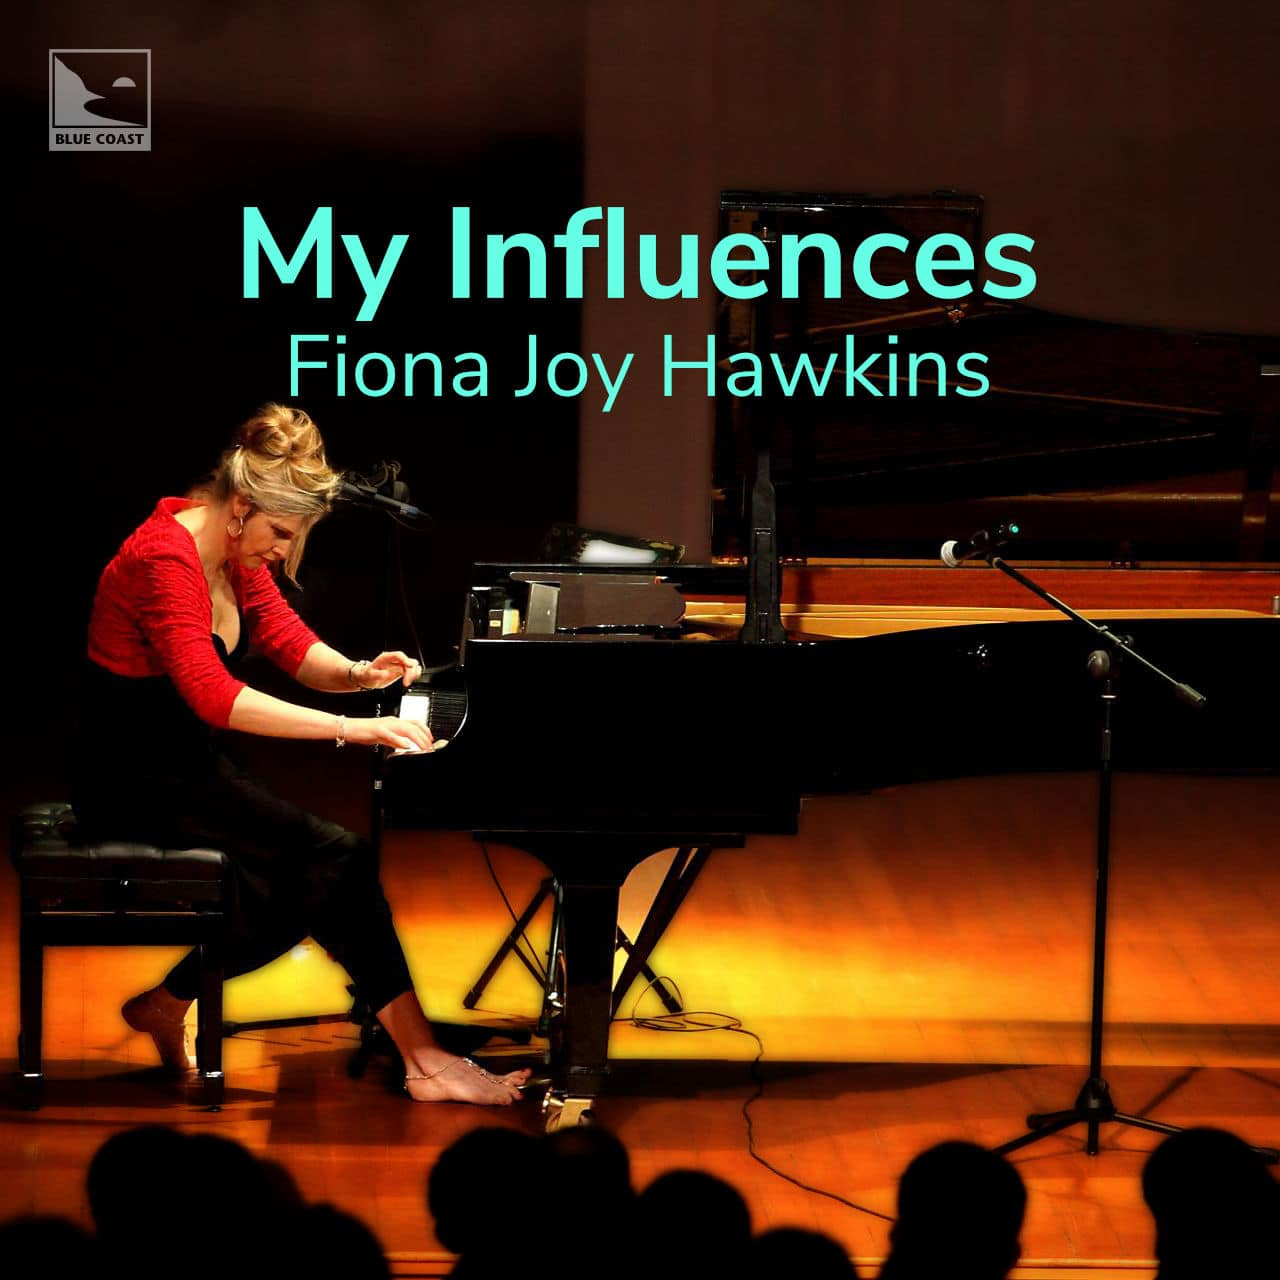 My Influences: Fiona Joy Hawkins